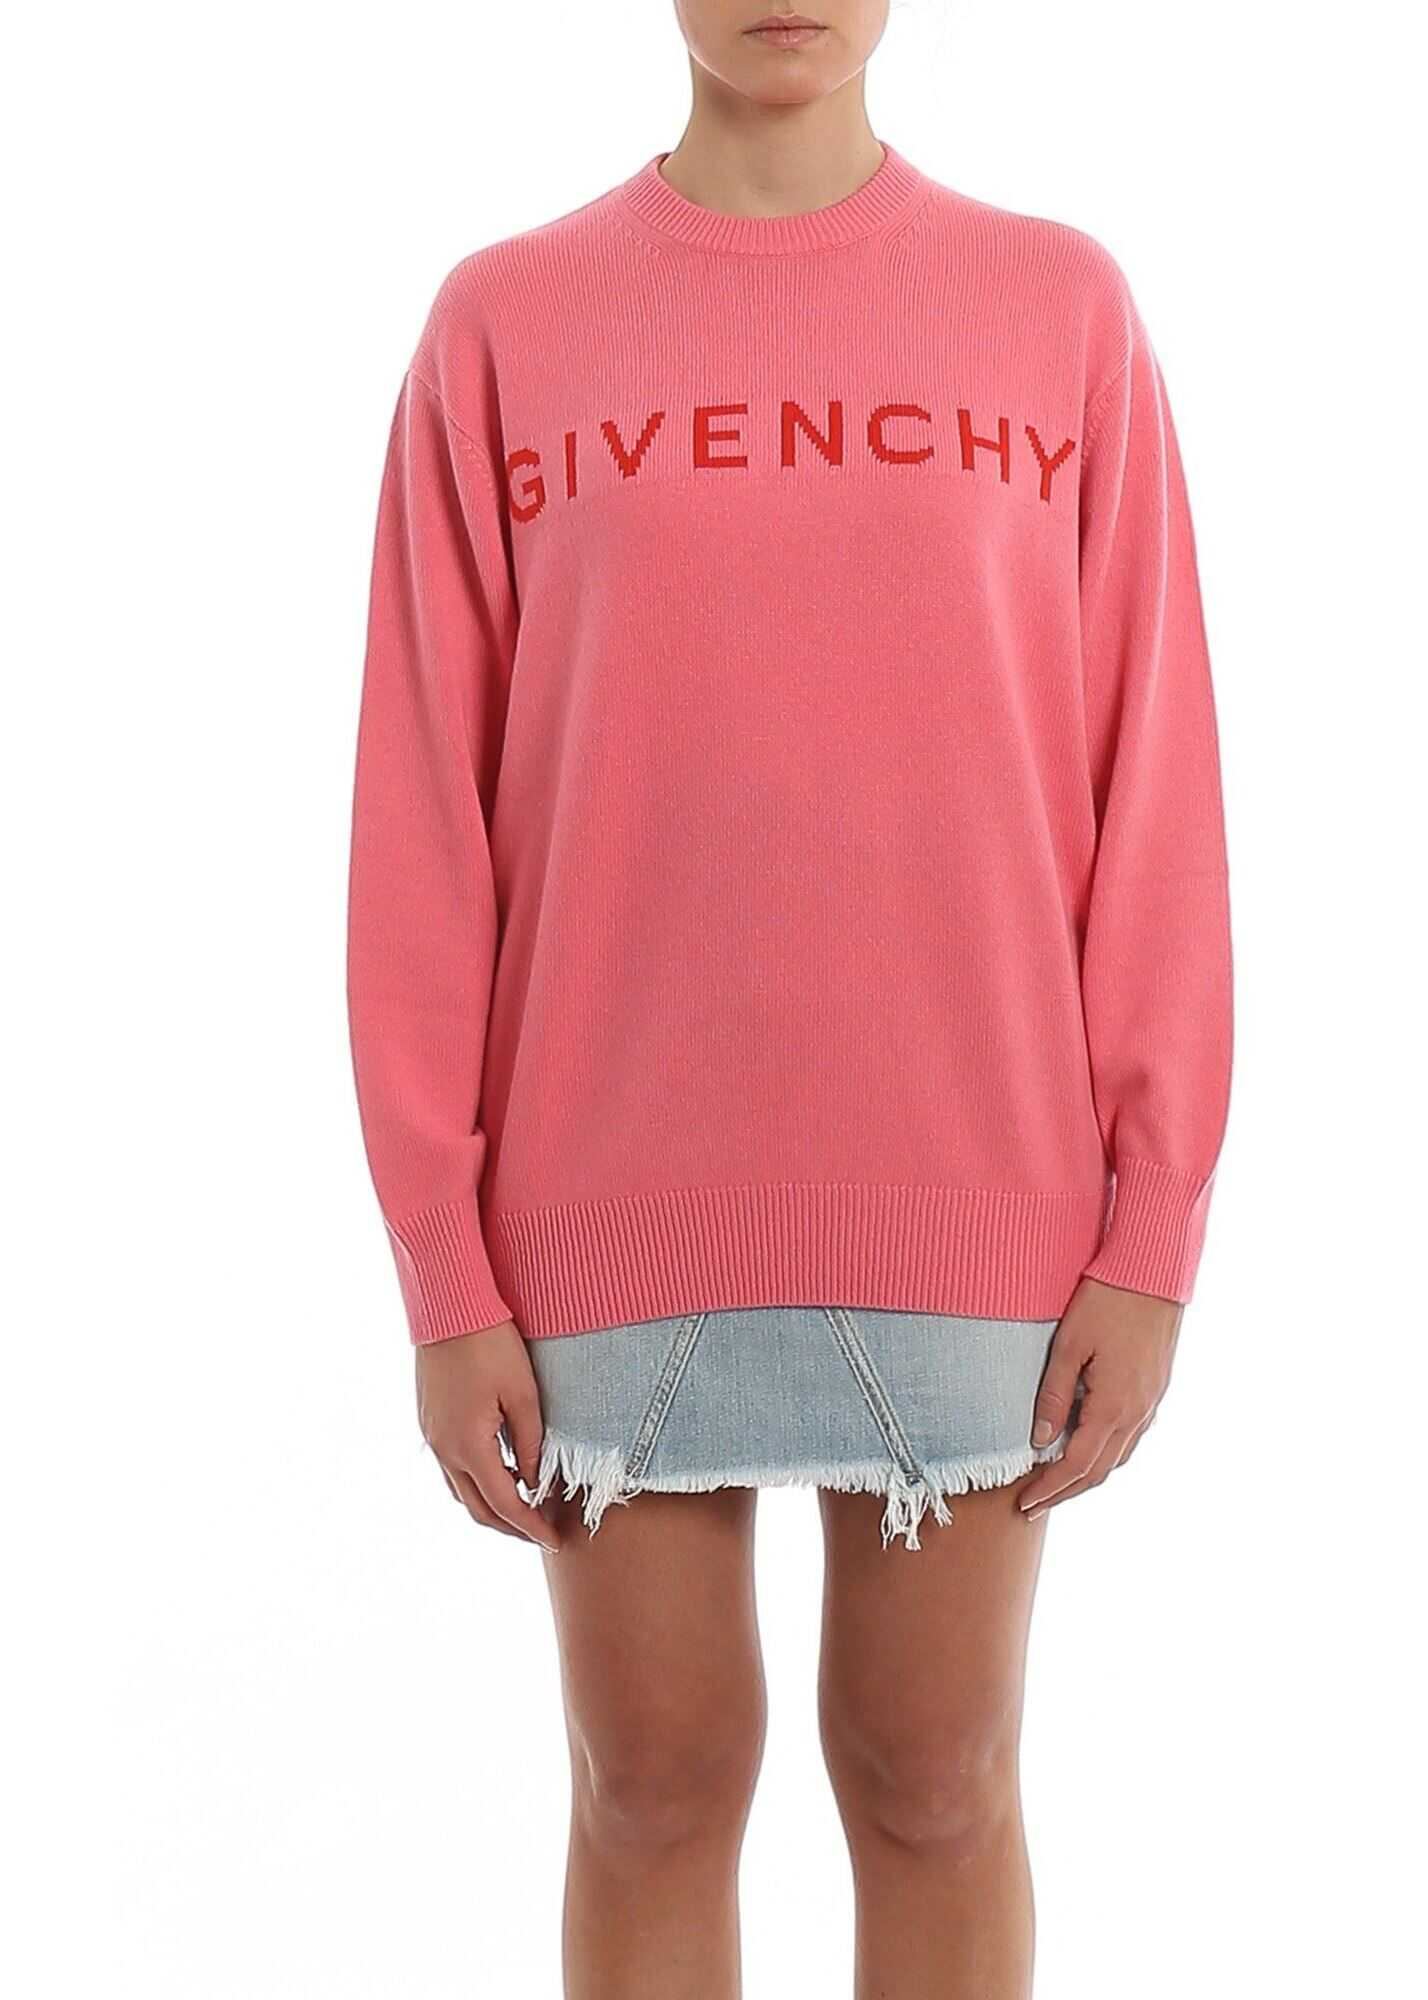 Givenchy Logo Intarsia Cashmere Sweater Pink